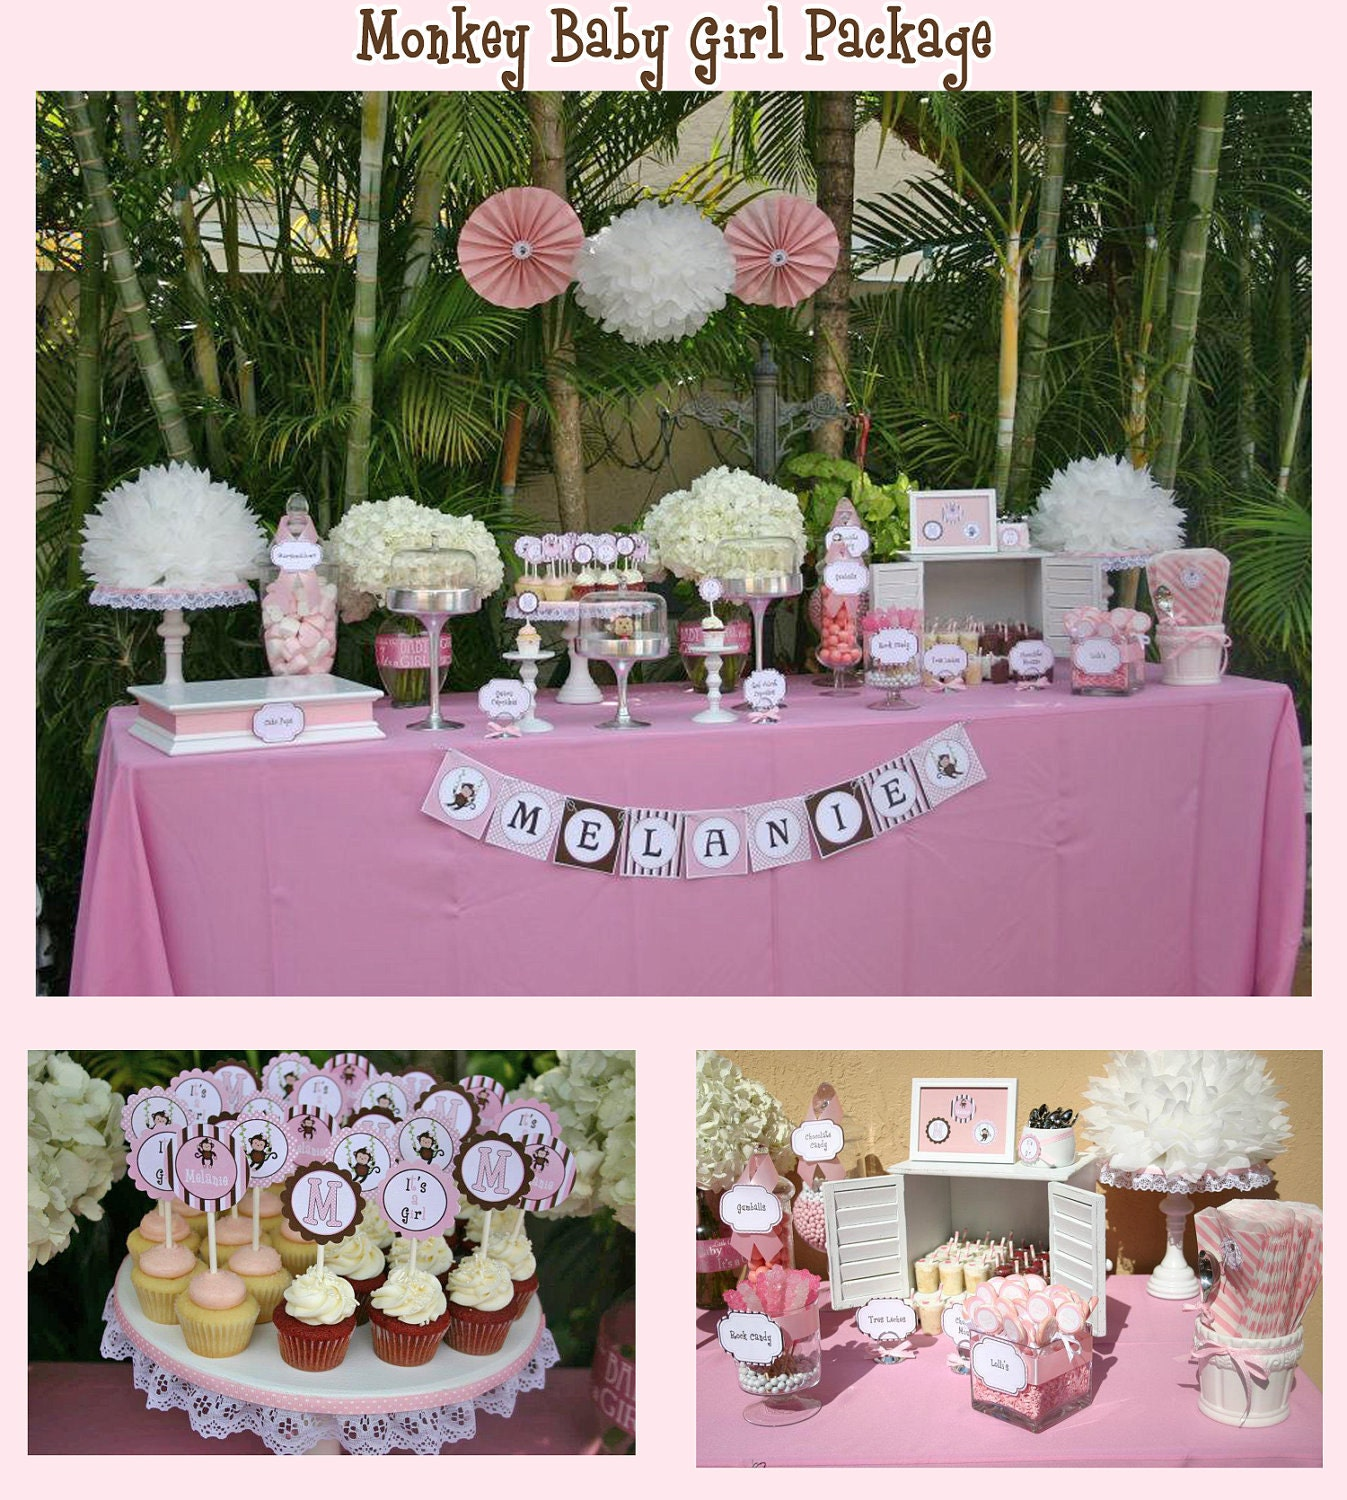 Diy monkey baby girl deluxe collection printable party package for Monkey bathroom ideas